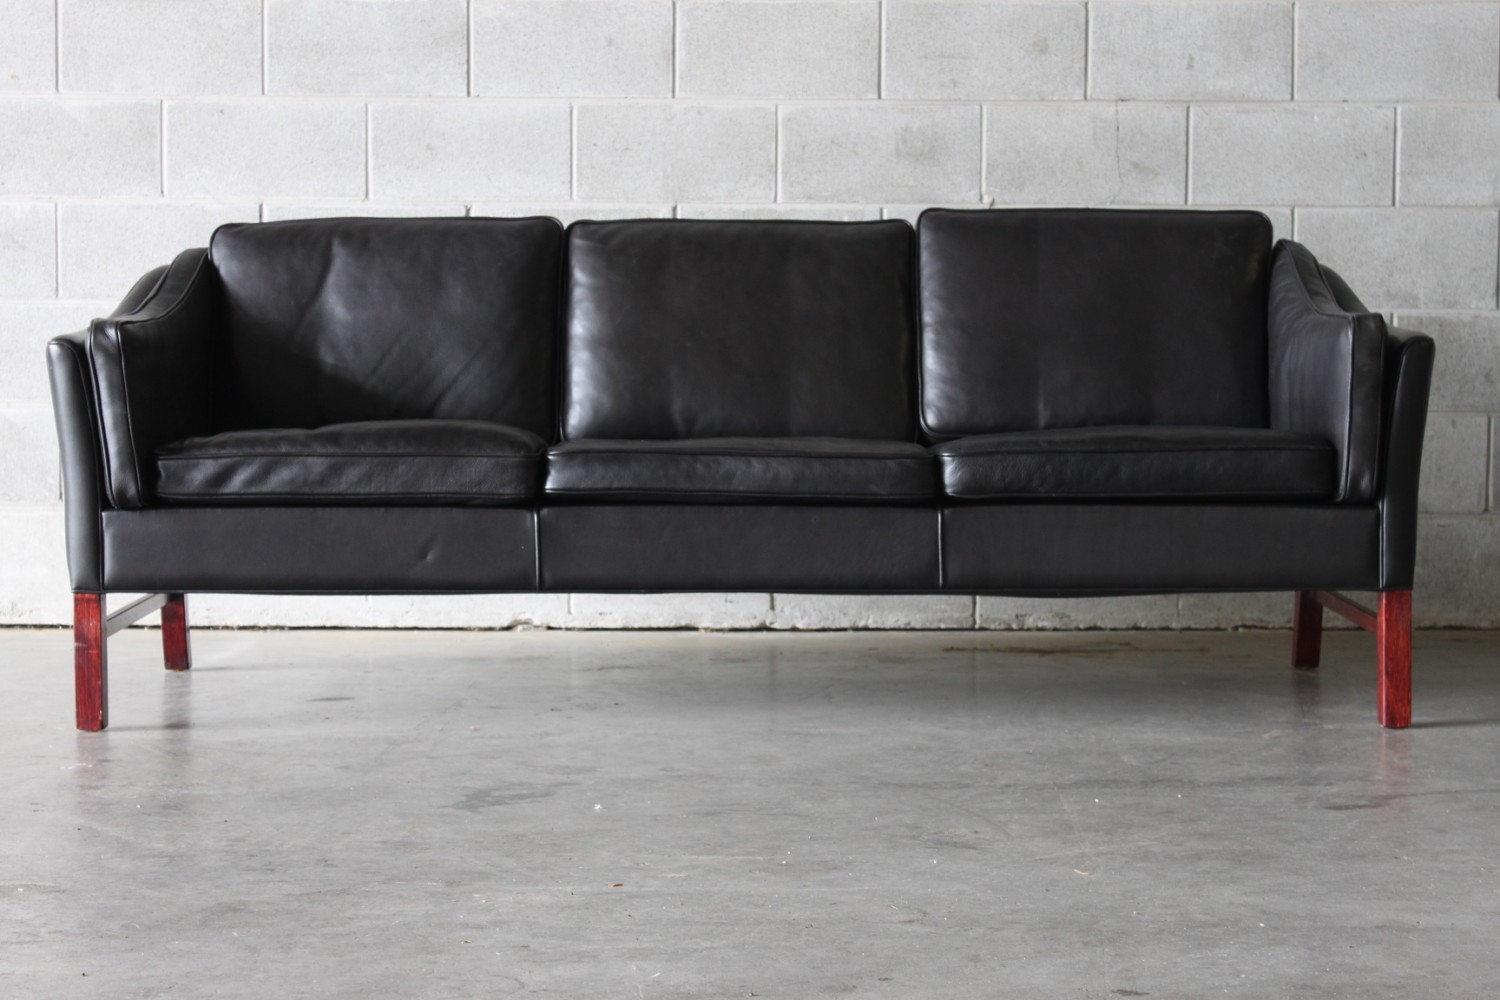 leather sofas auckland diy sofa table with charging station pair of black the vintage shop